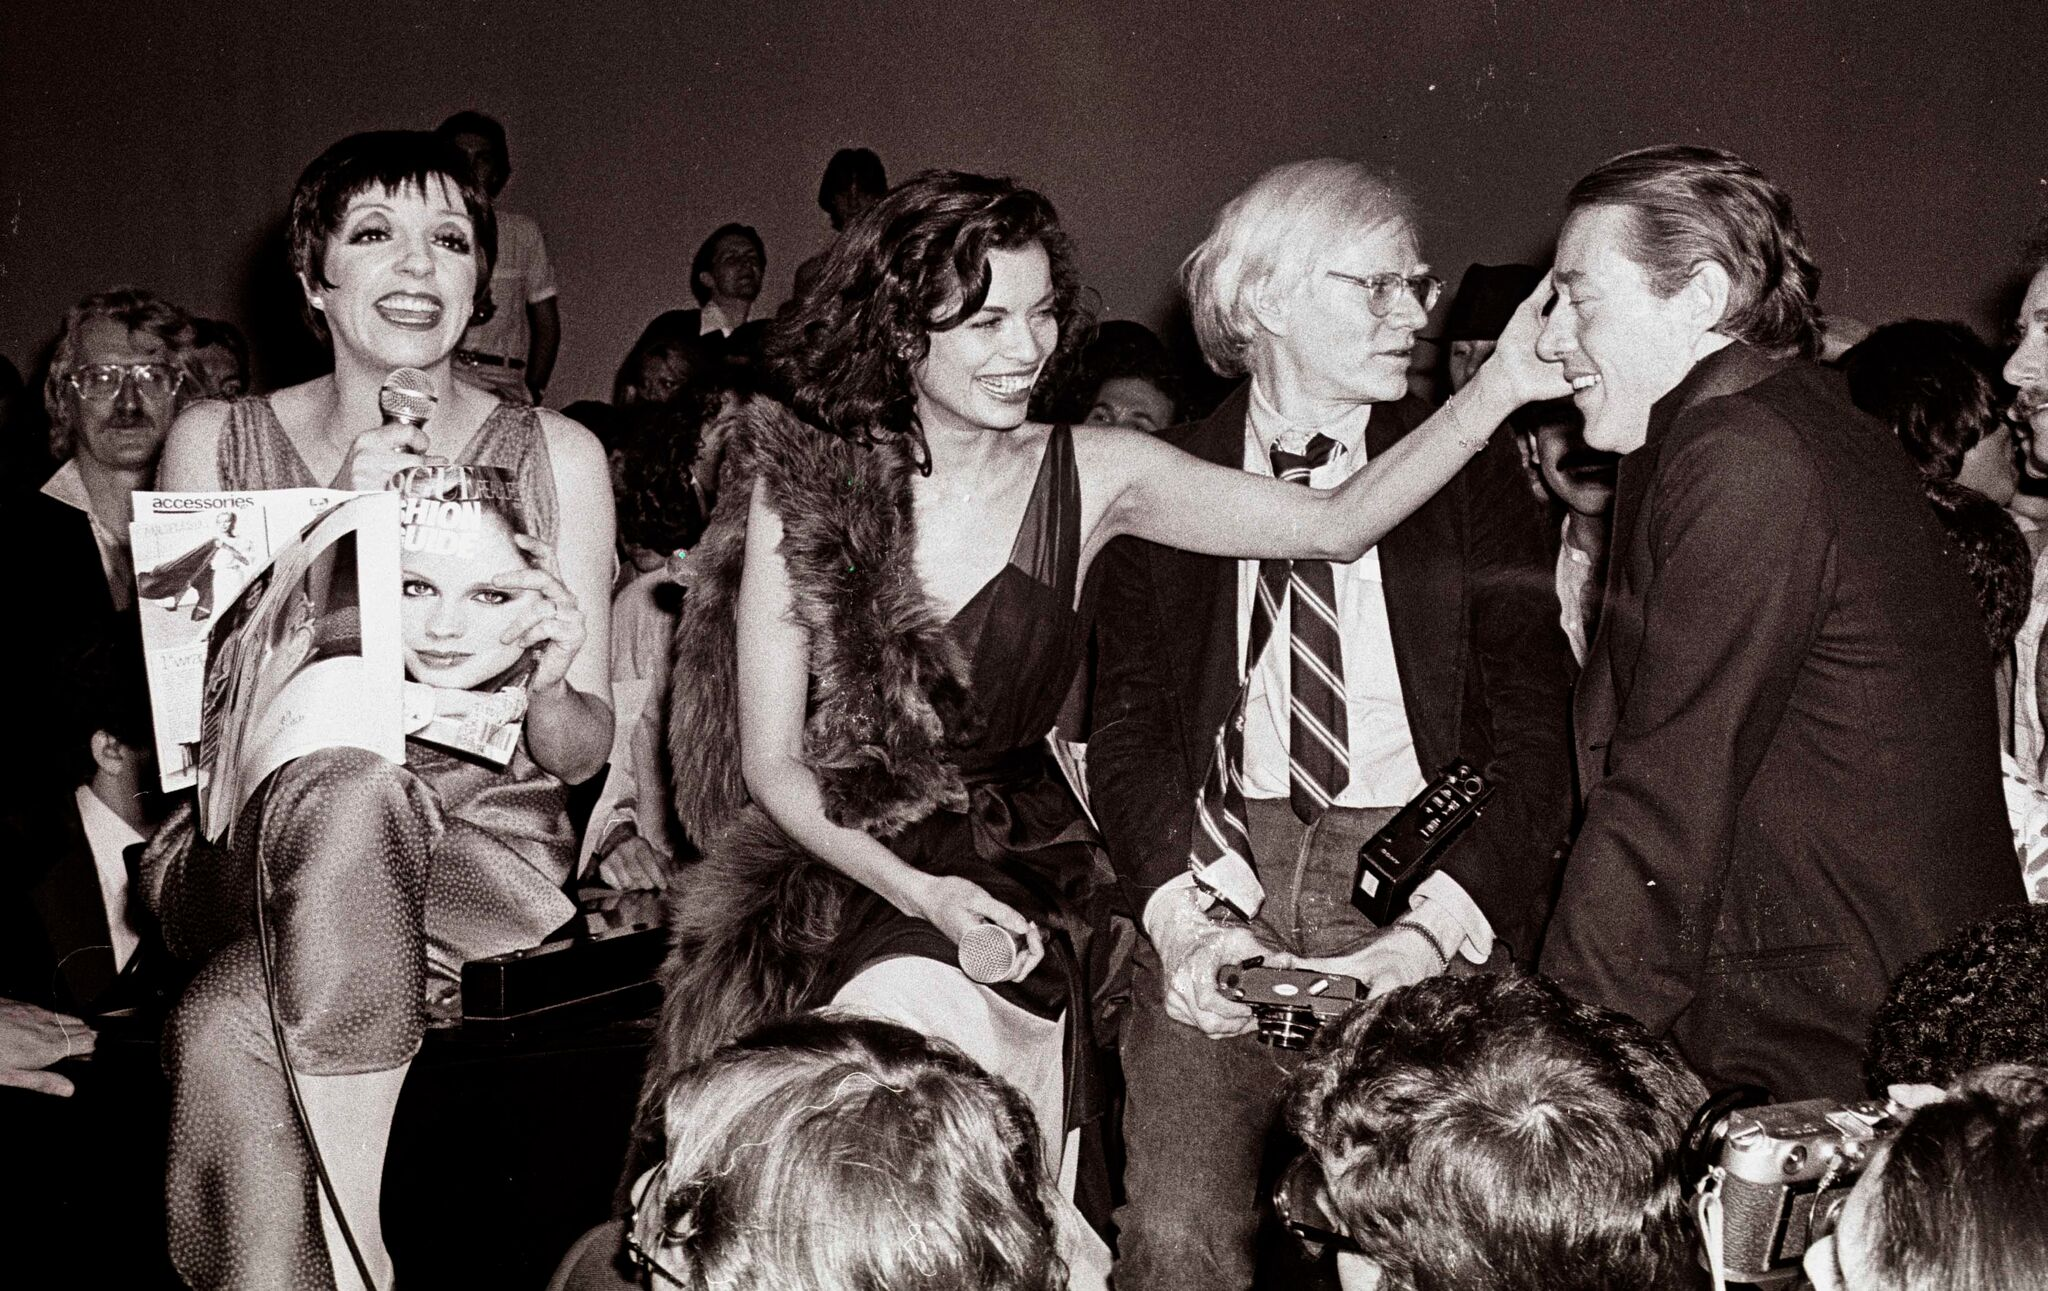 Studio 54: Sex, drugs and disco